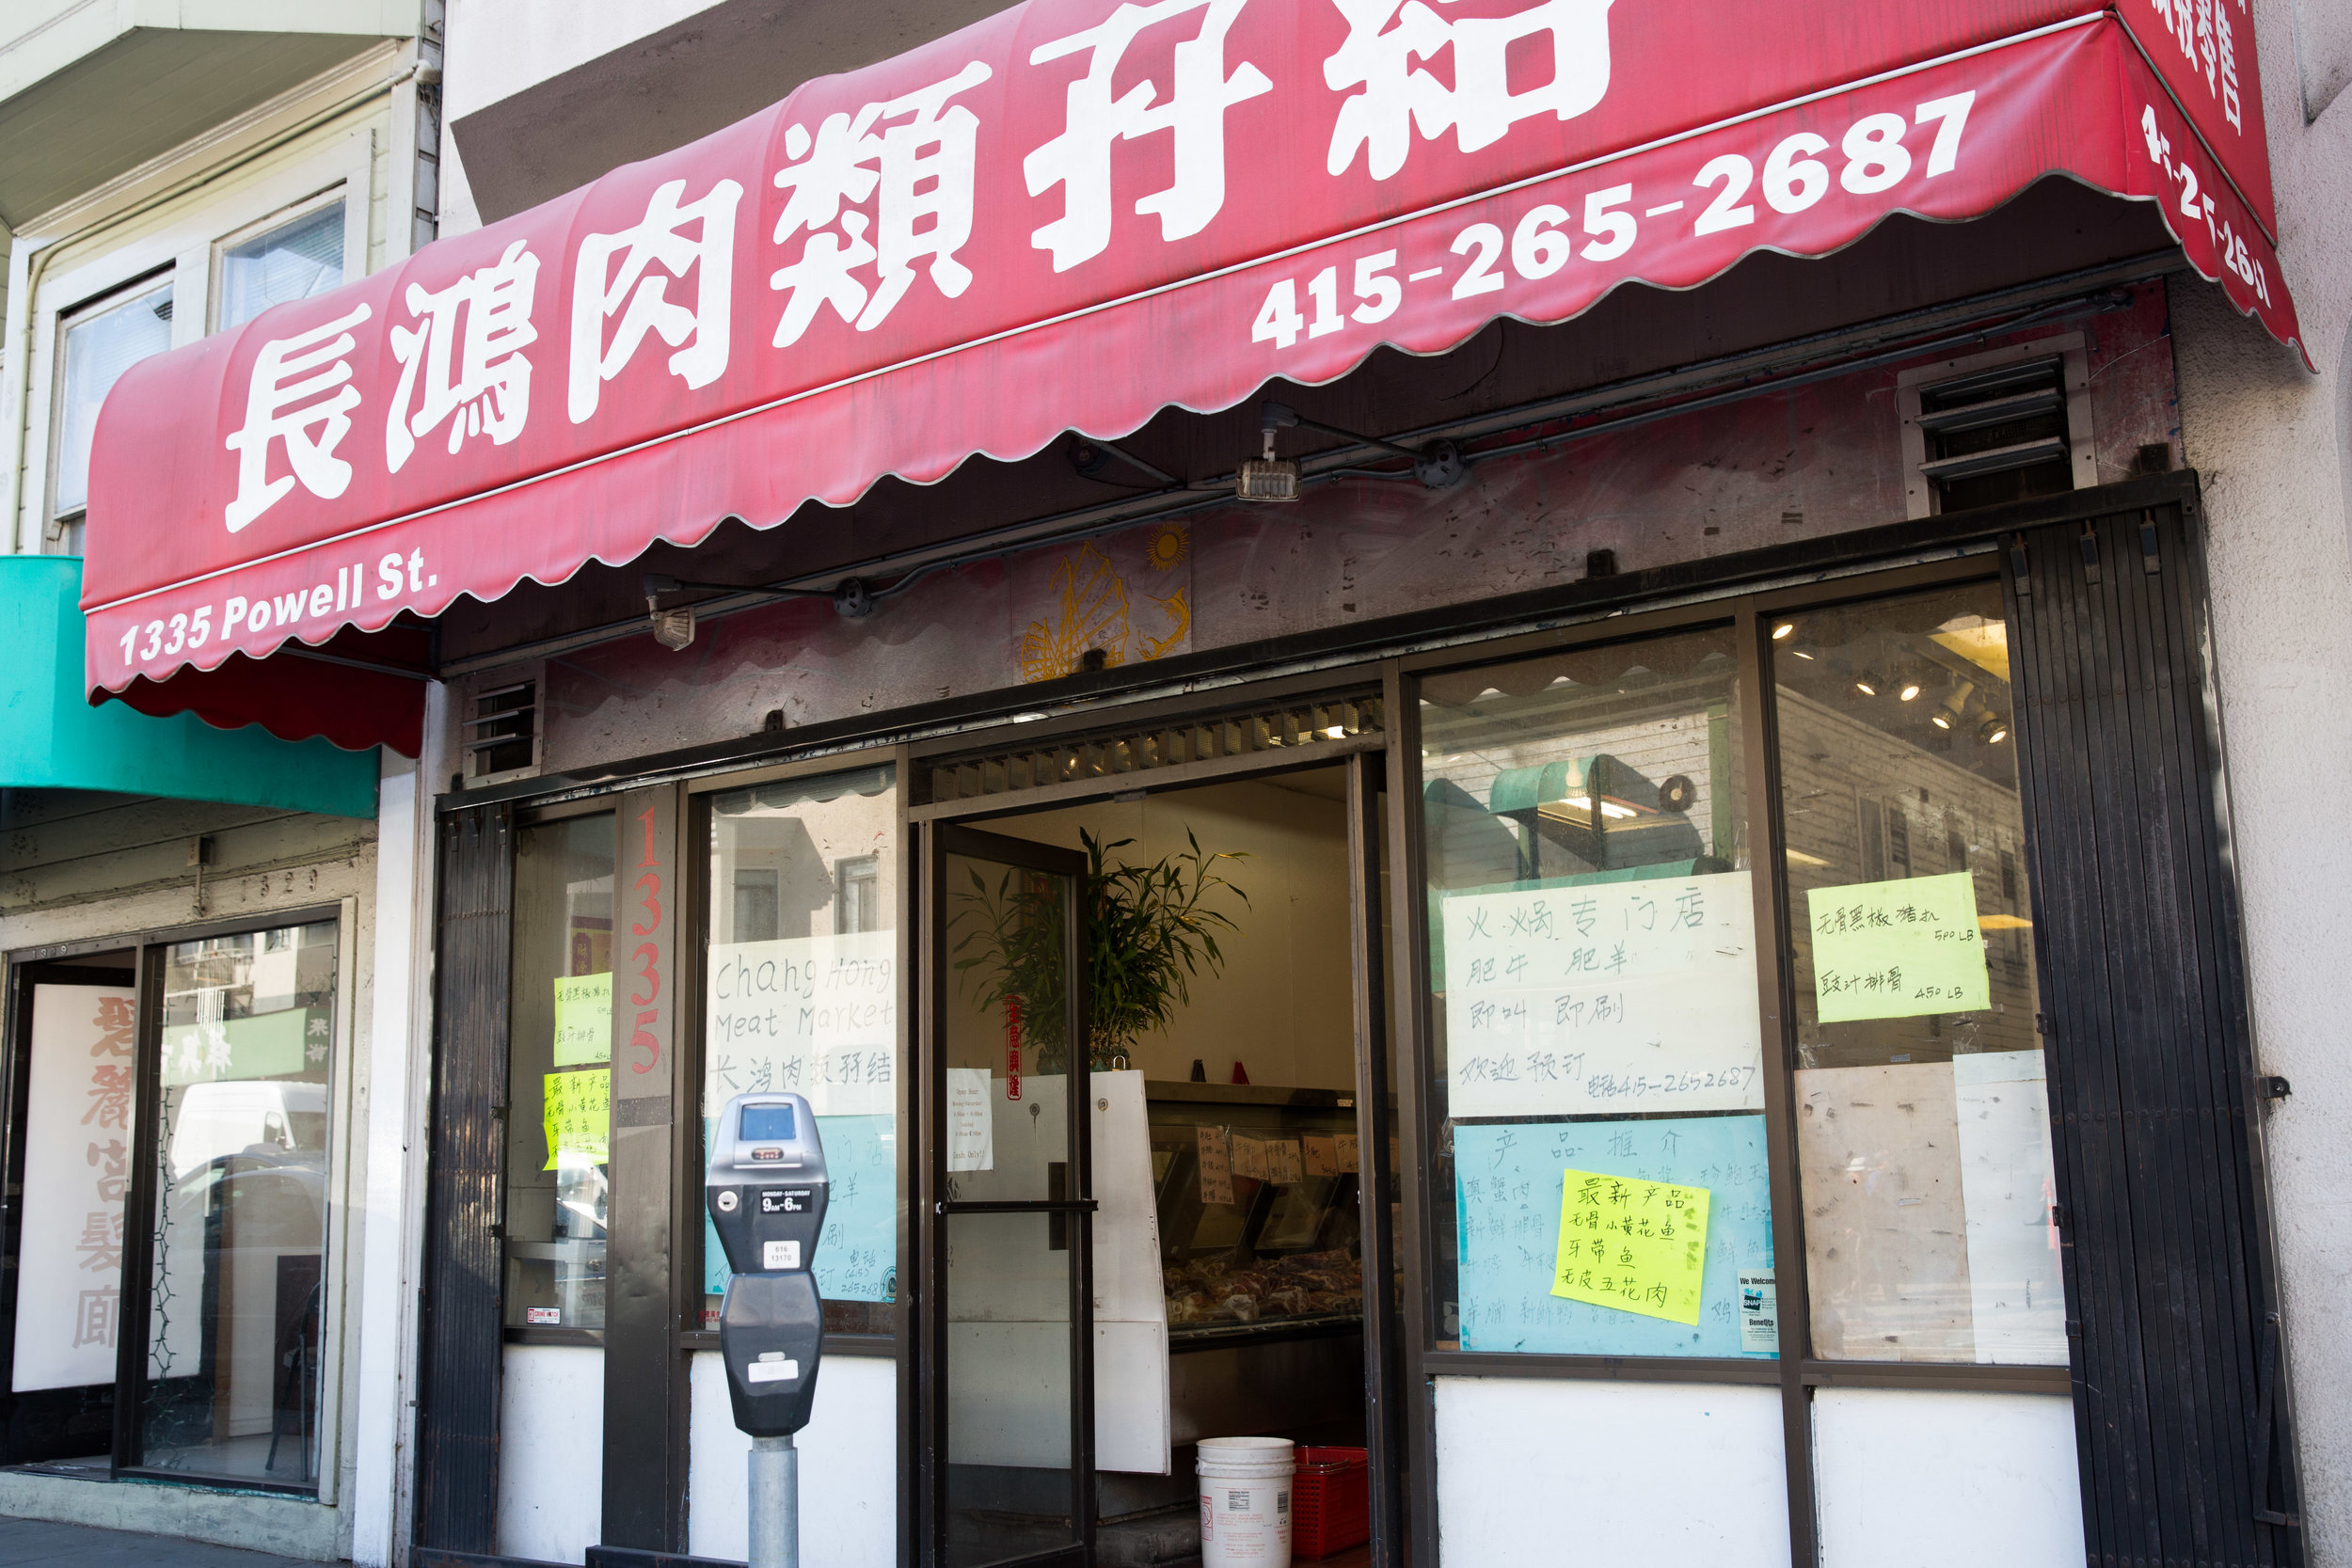 Chang Hong Meat Market 長鴻肉類孖結